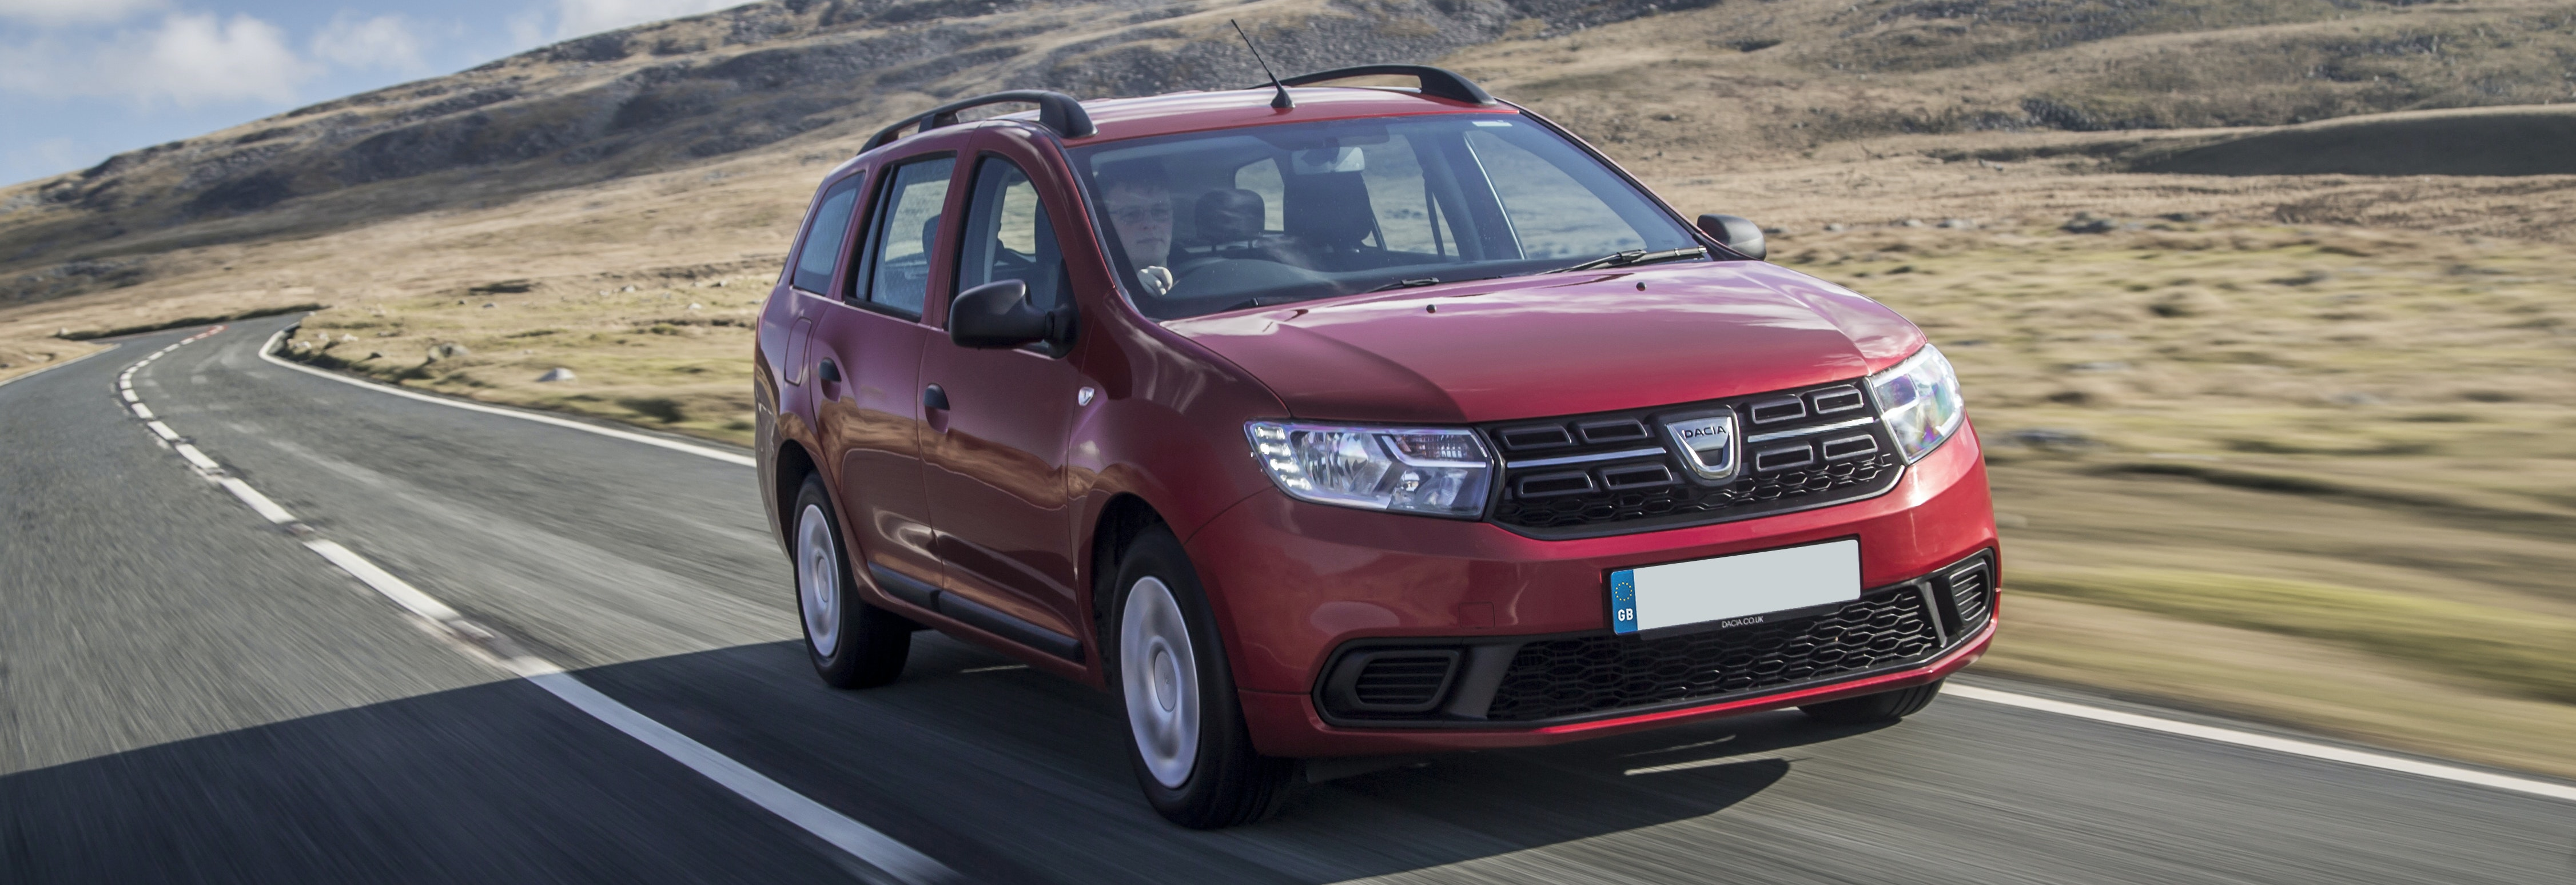 2018 dacia logan red driving front